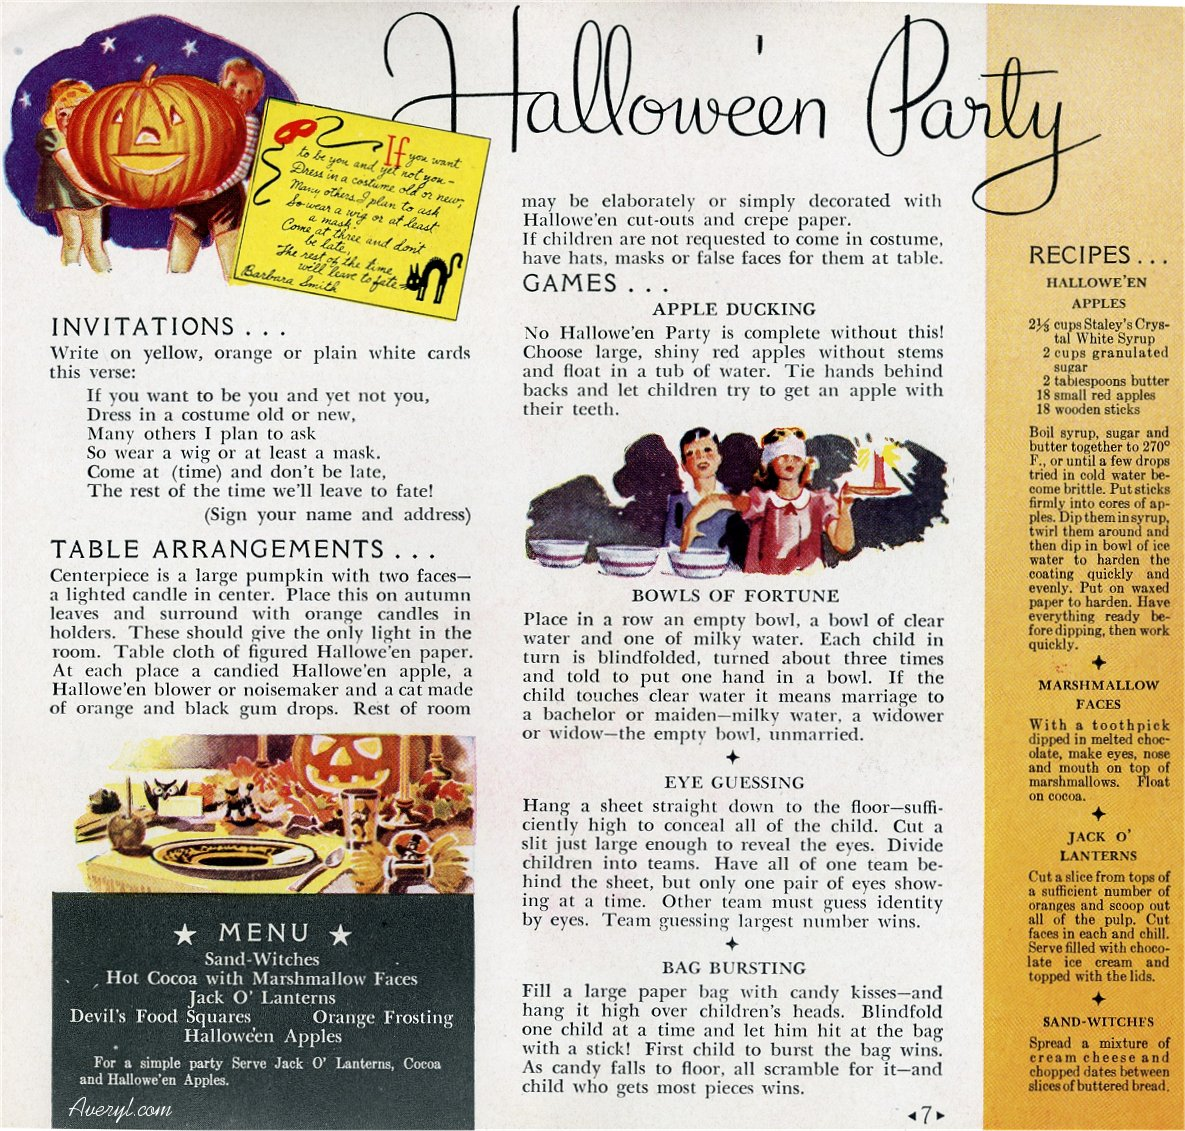 Vintage 1930s Halloween Party Ideas for the Kiddies